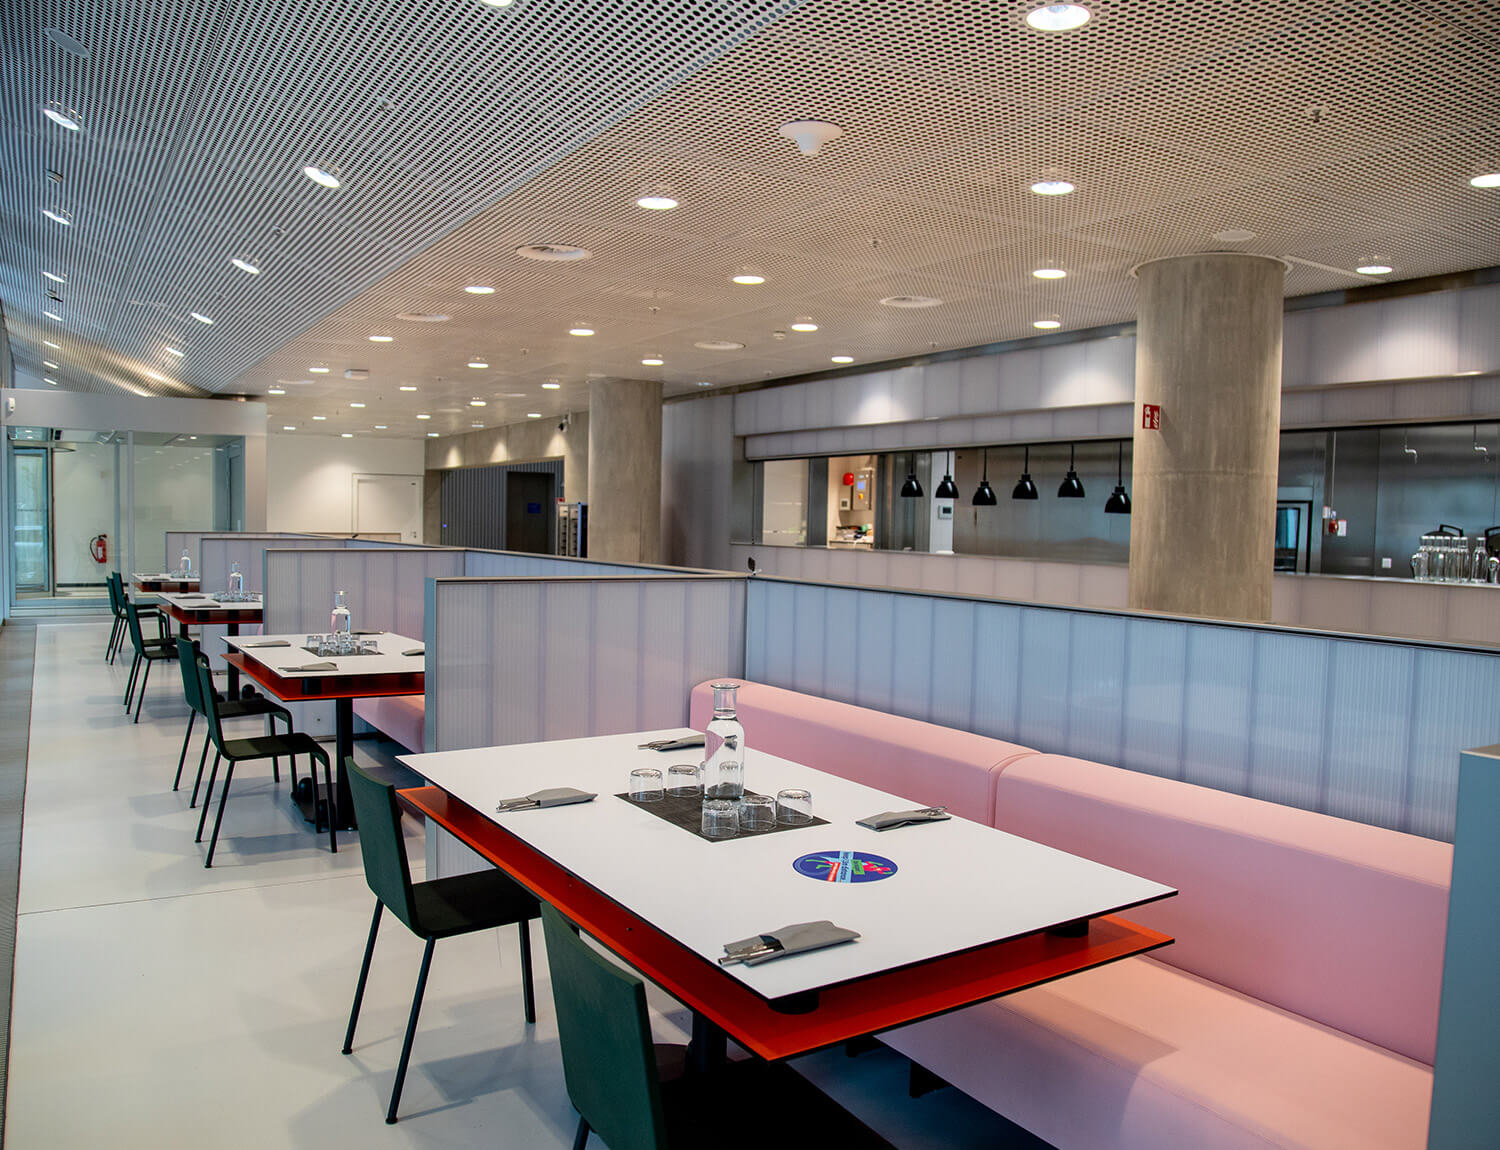 The seating area in the DINER